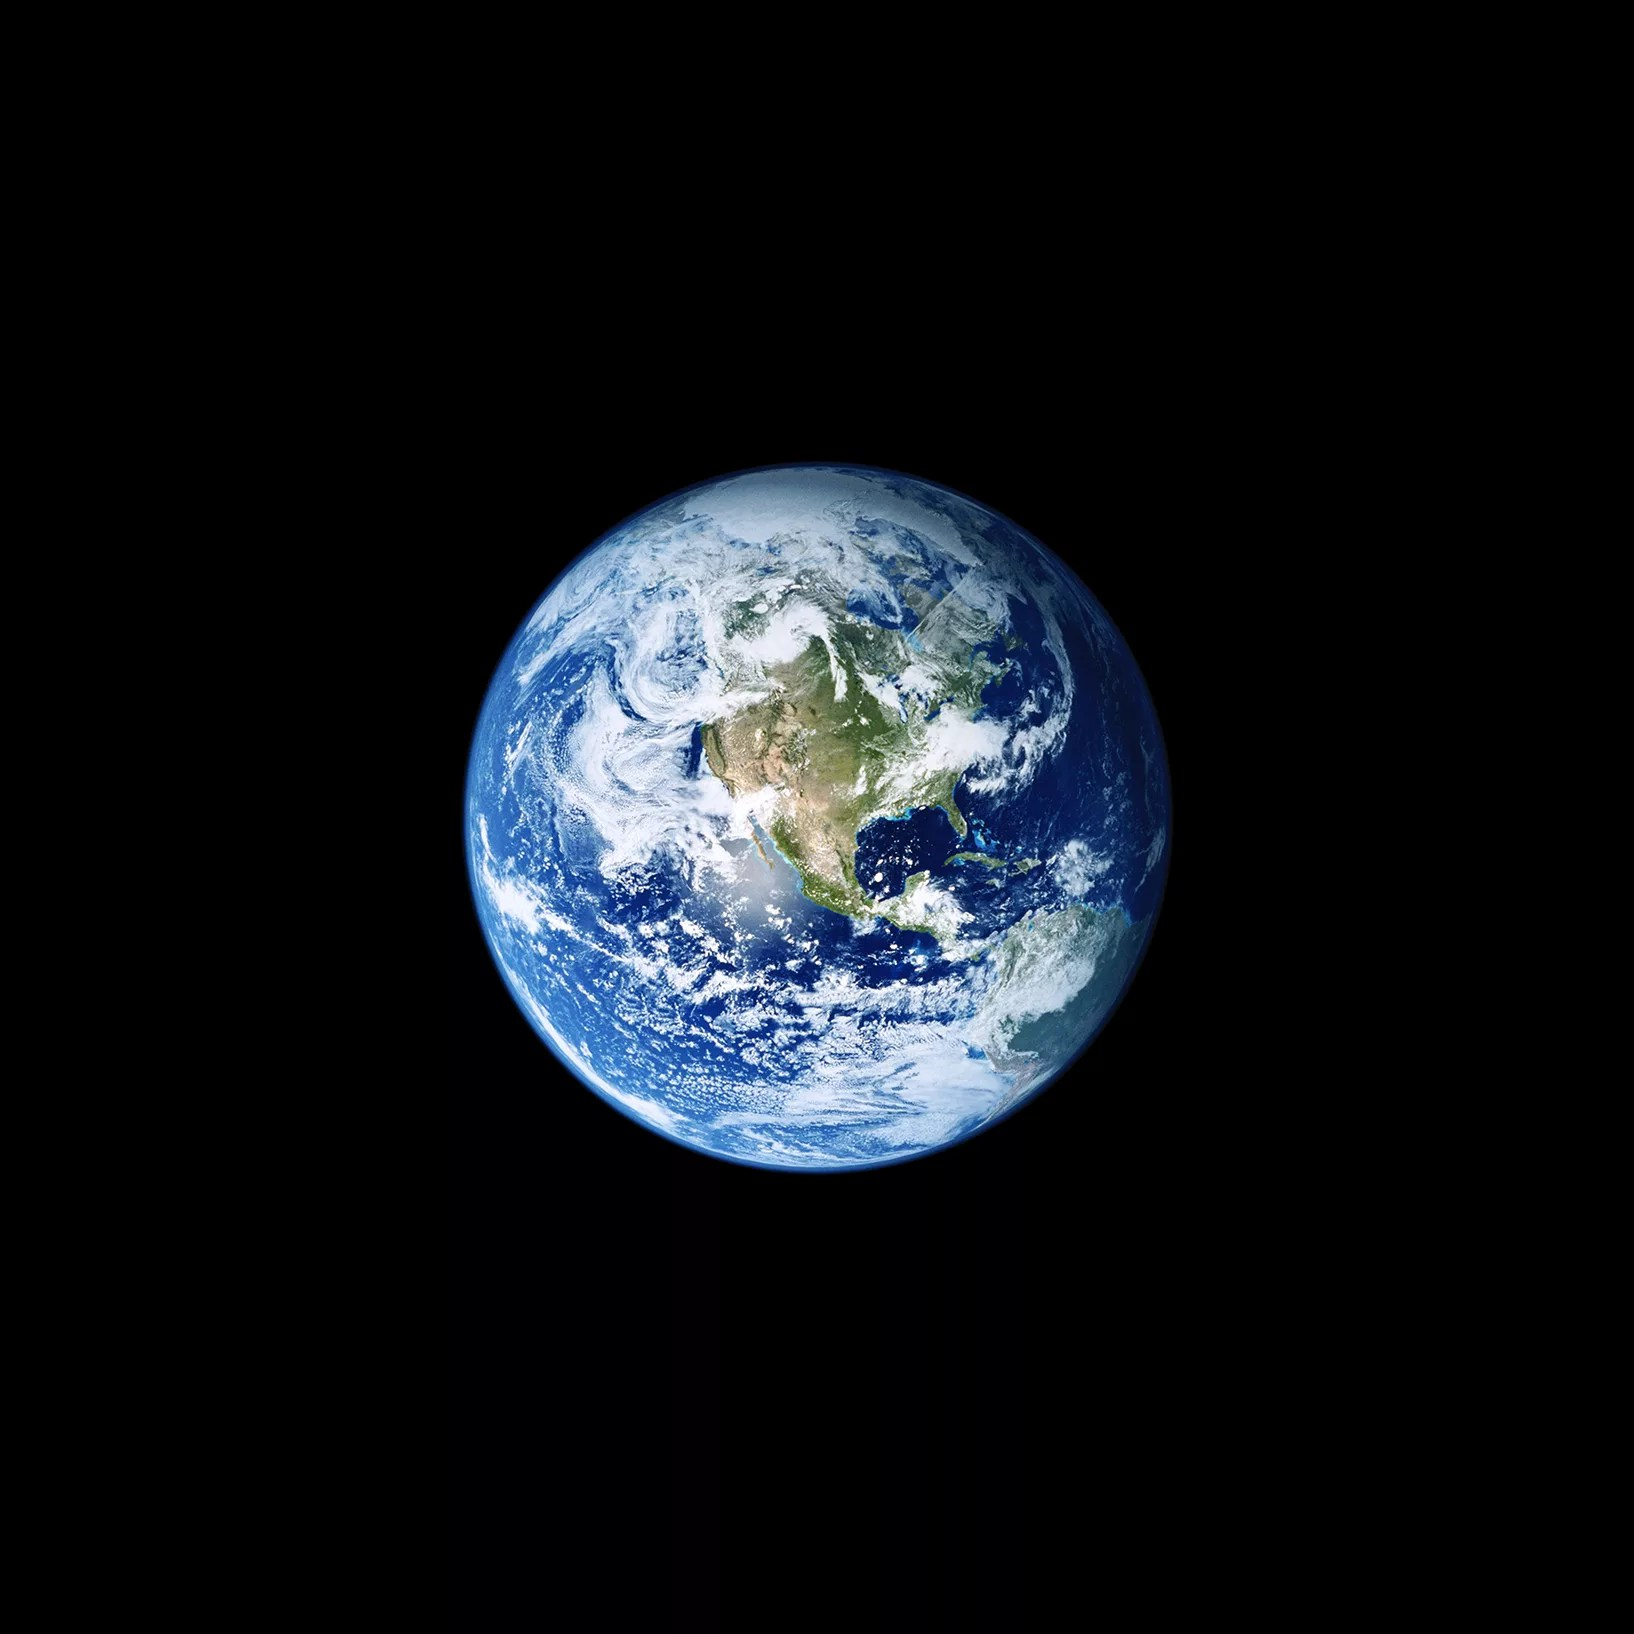 ios_11_gm_wallpaper_earth.jpg